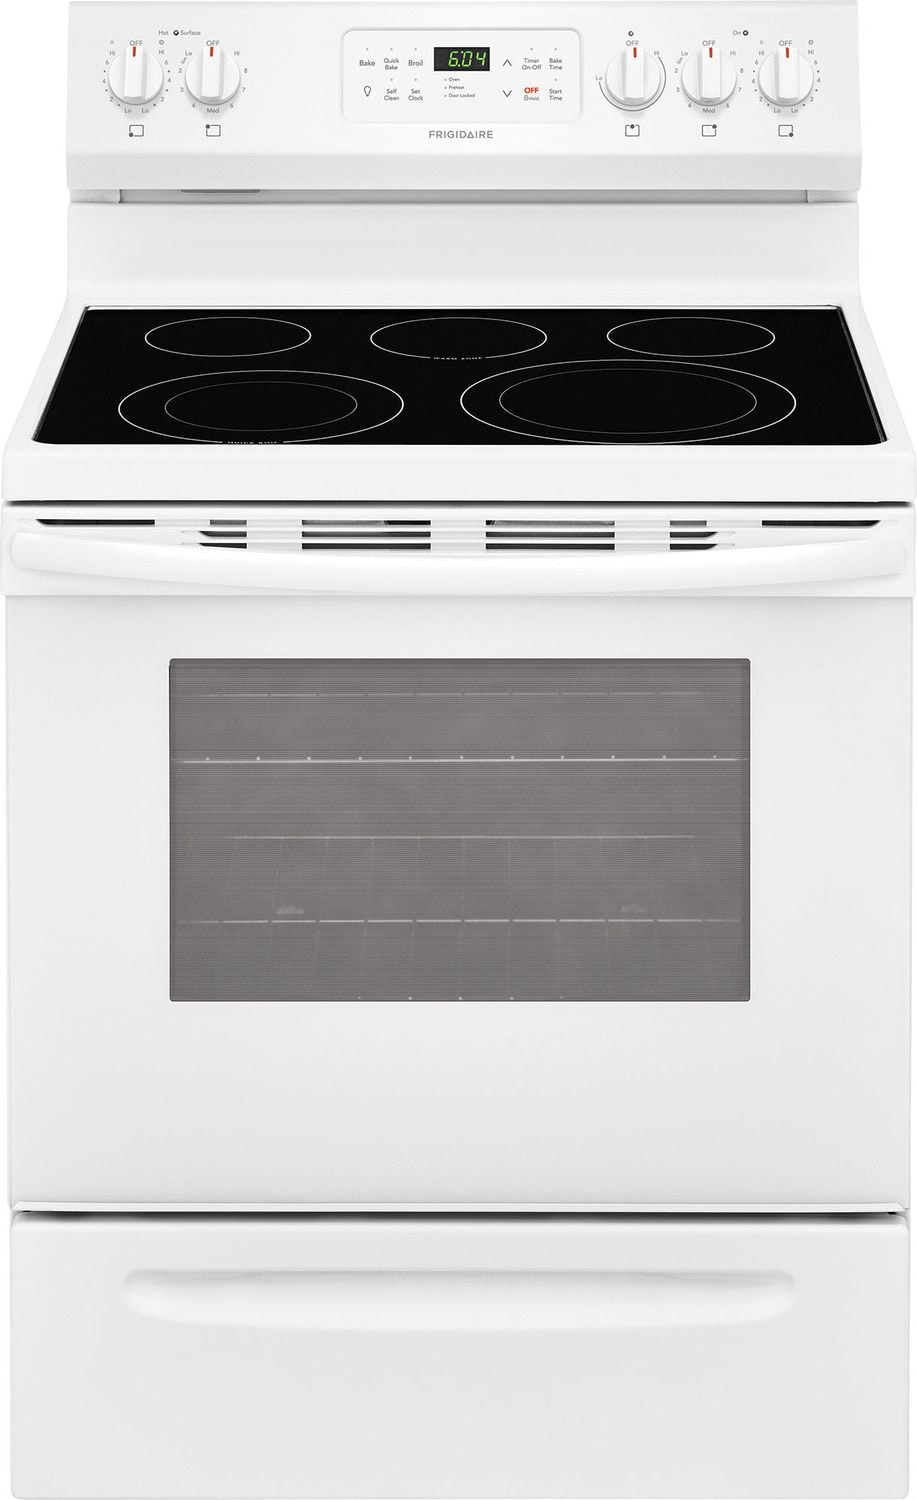 Frigidaire White Freestanding Electric Convection Range (5.4 Cu. Ft.) - CFEF3056TW